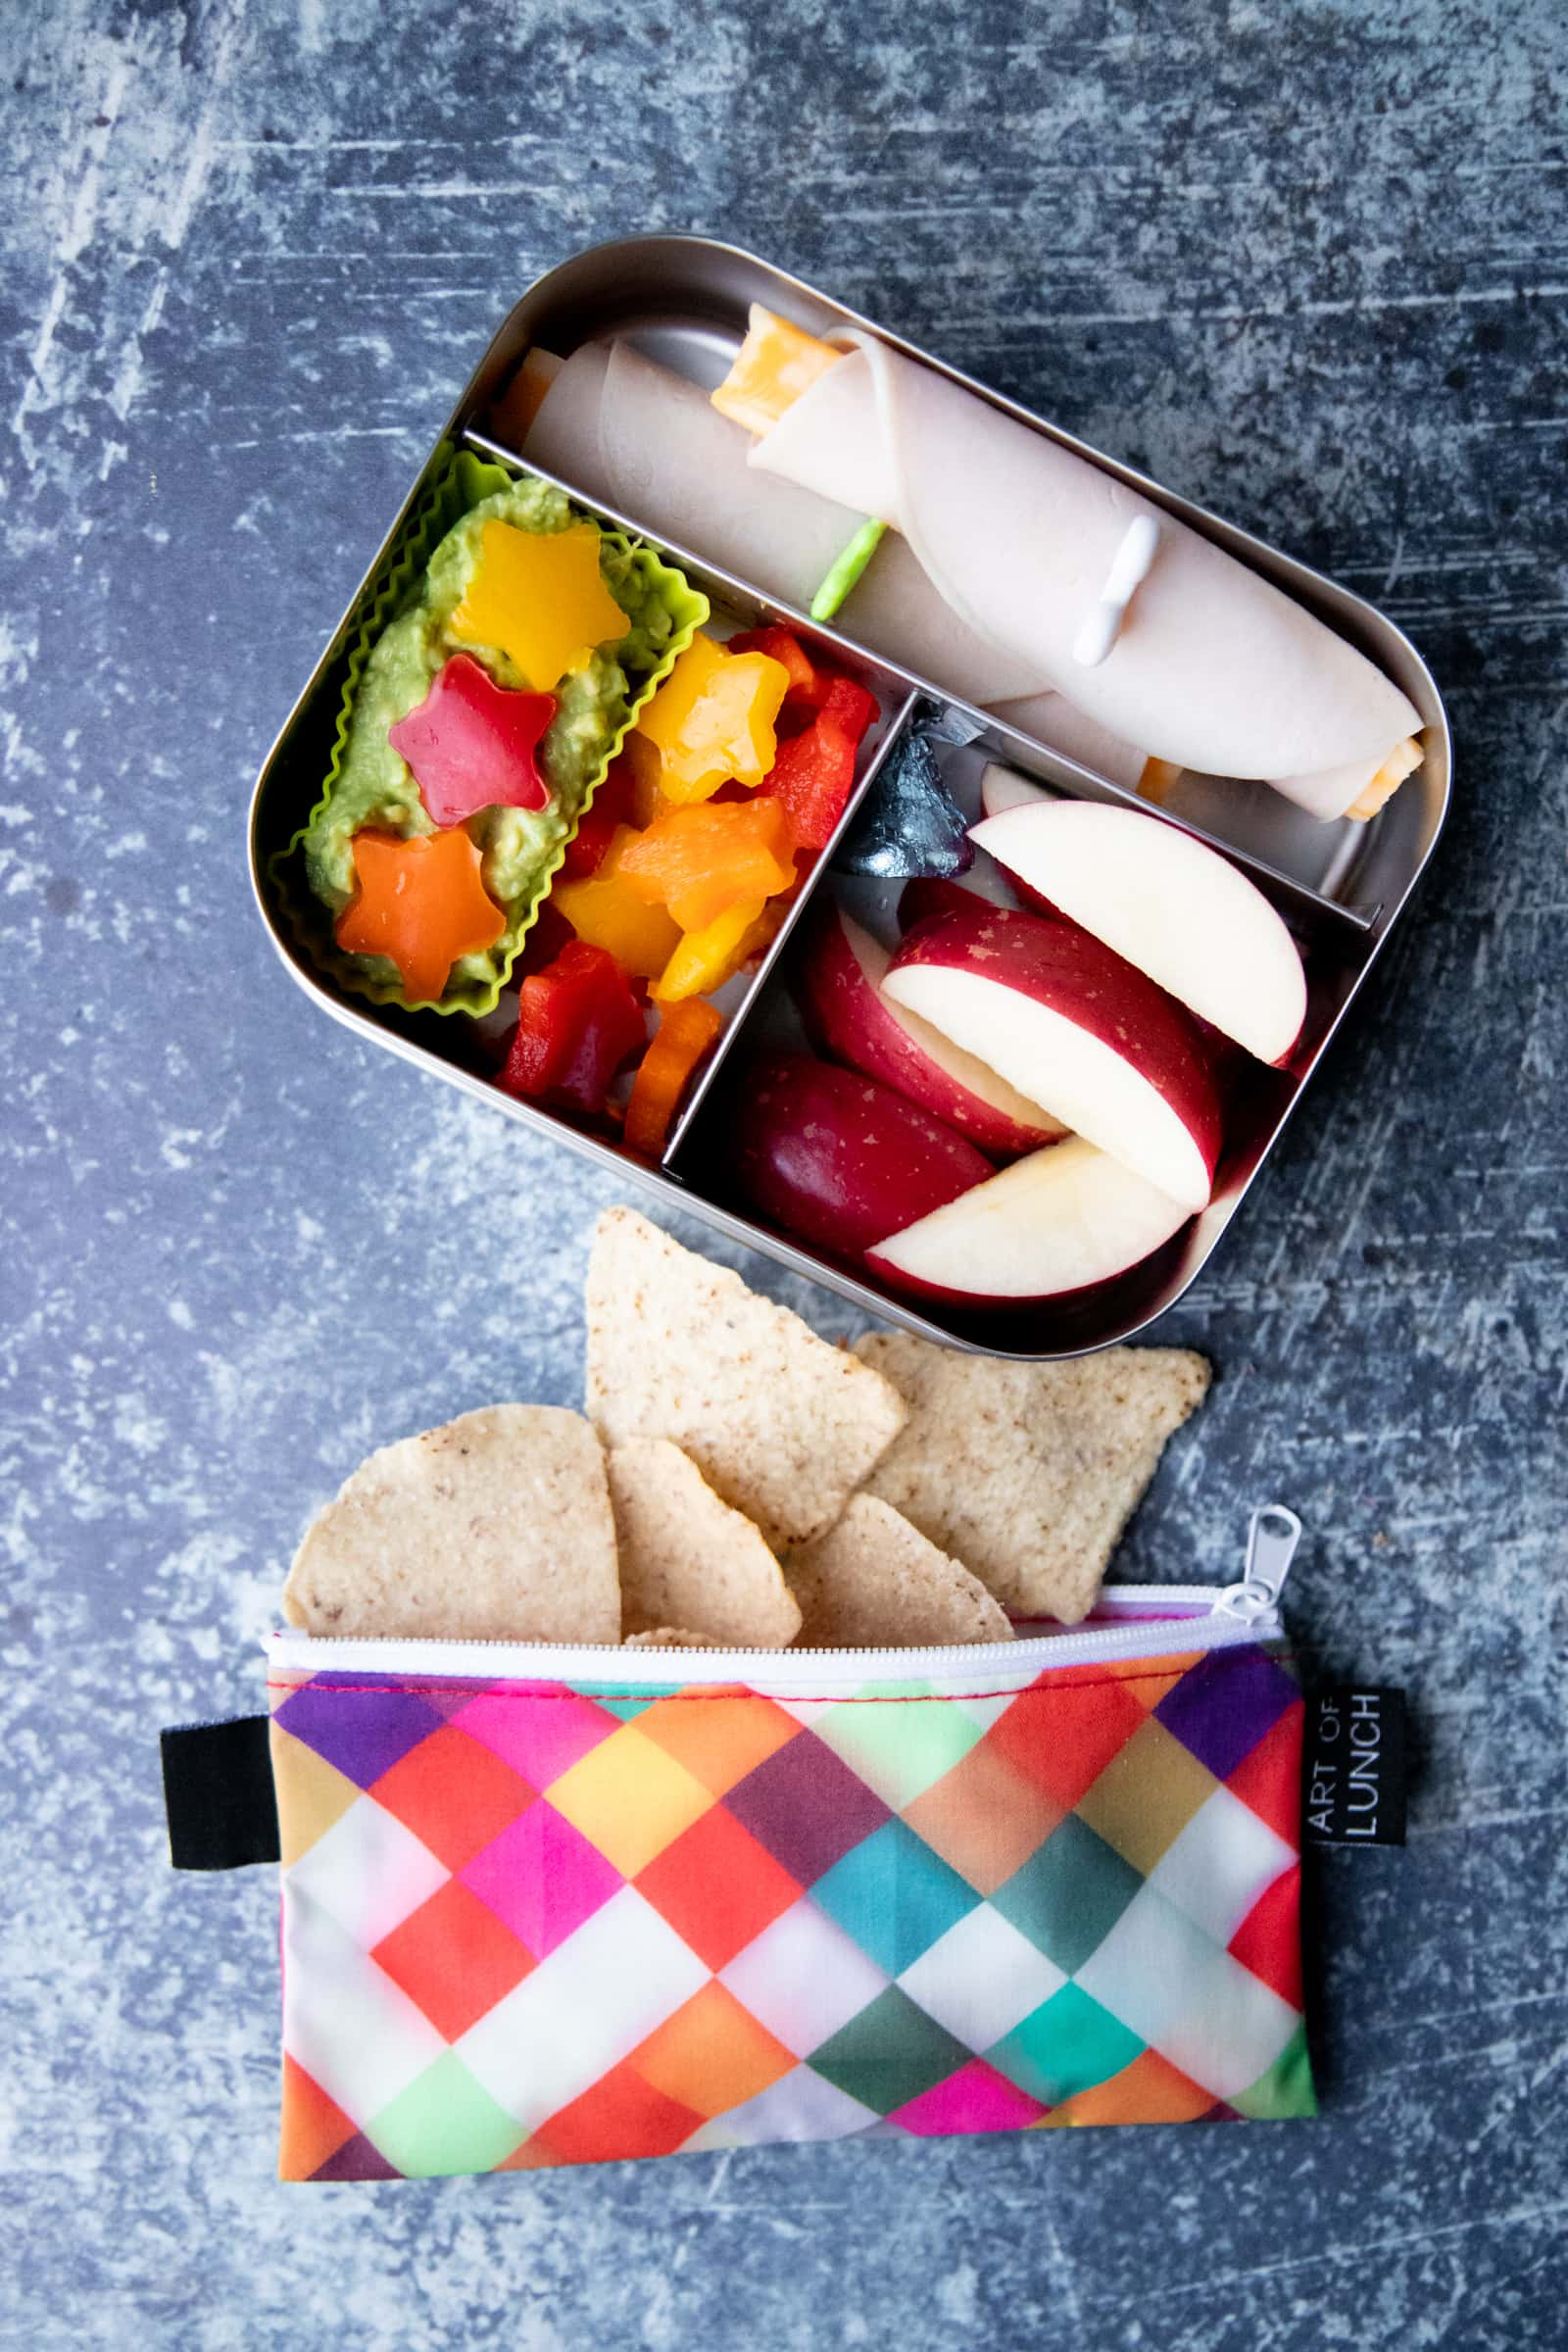 Packed school lunch of apple slices, bell pepper stars, guacamole, turkey and cheese roll-ups, and a bag of tortilla chips.